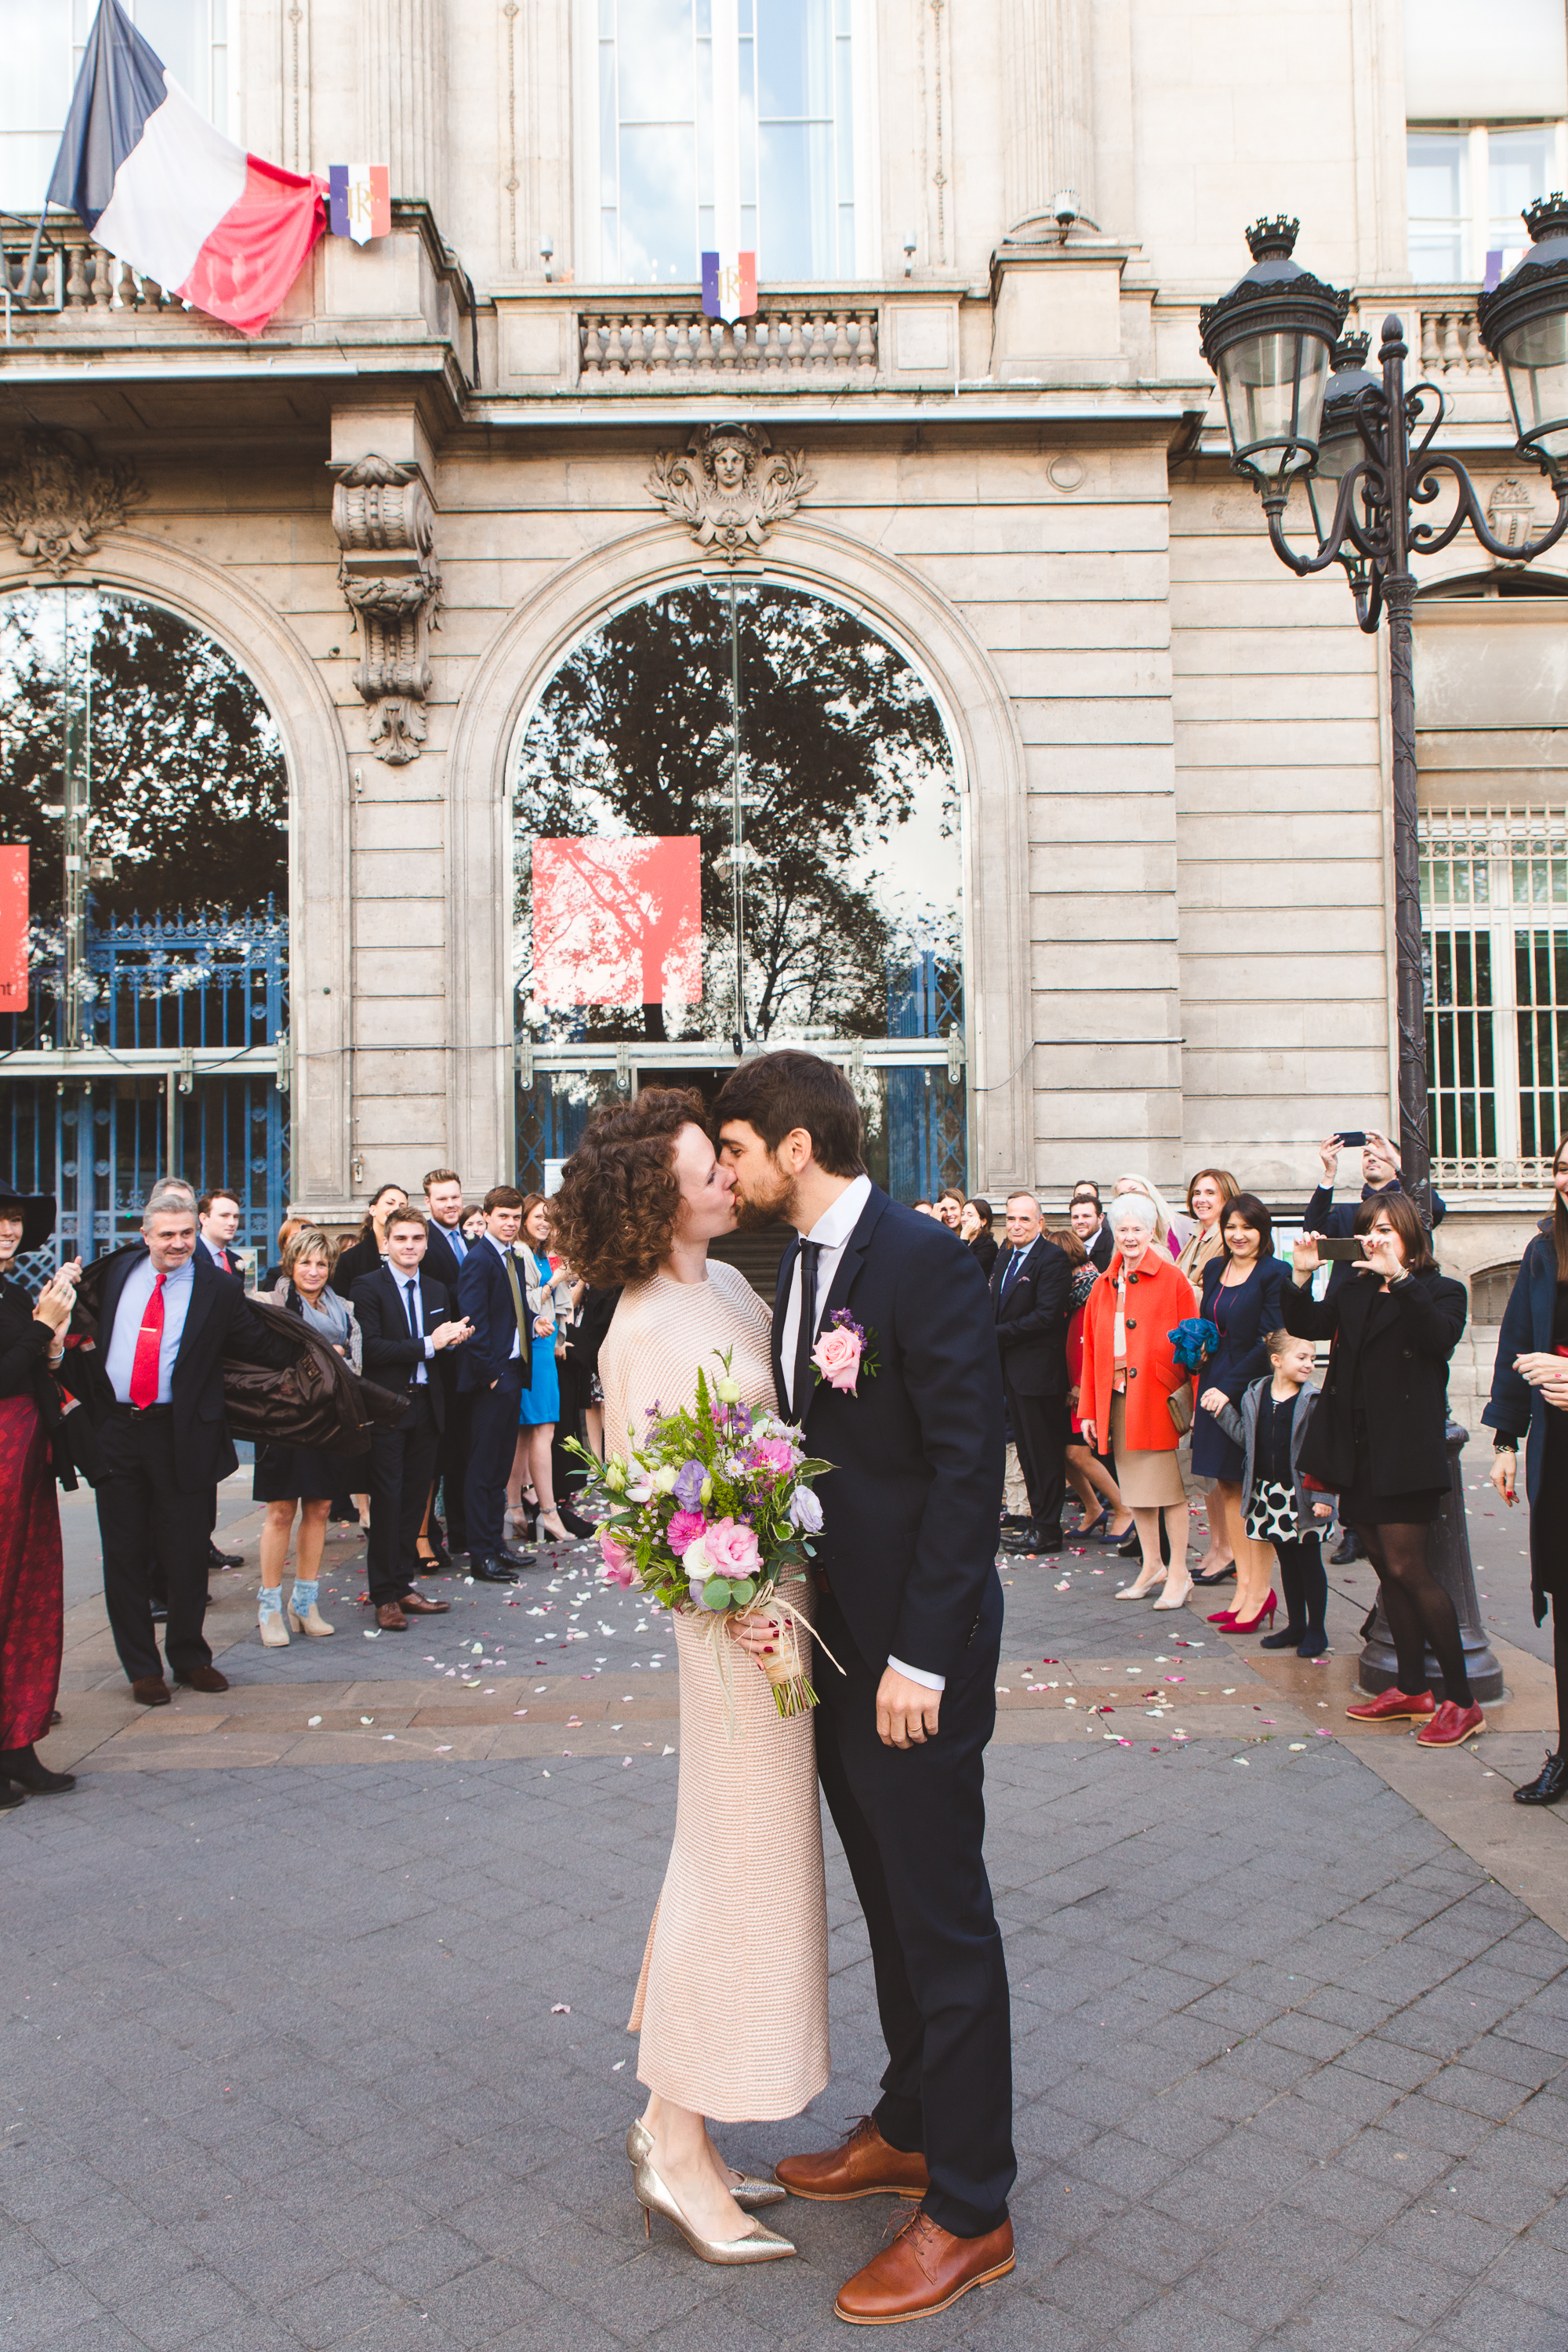 Emma&Nico_WeddingParis_by_UlaBlocksage-108.jpg